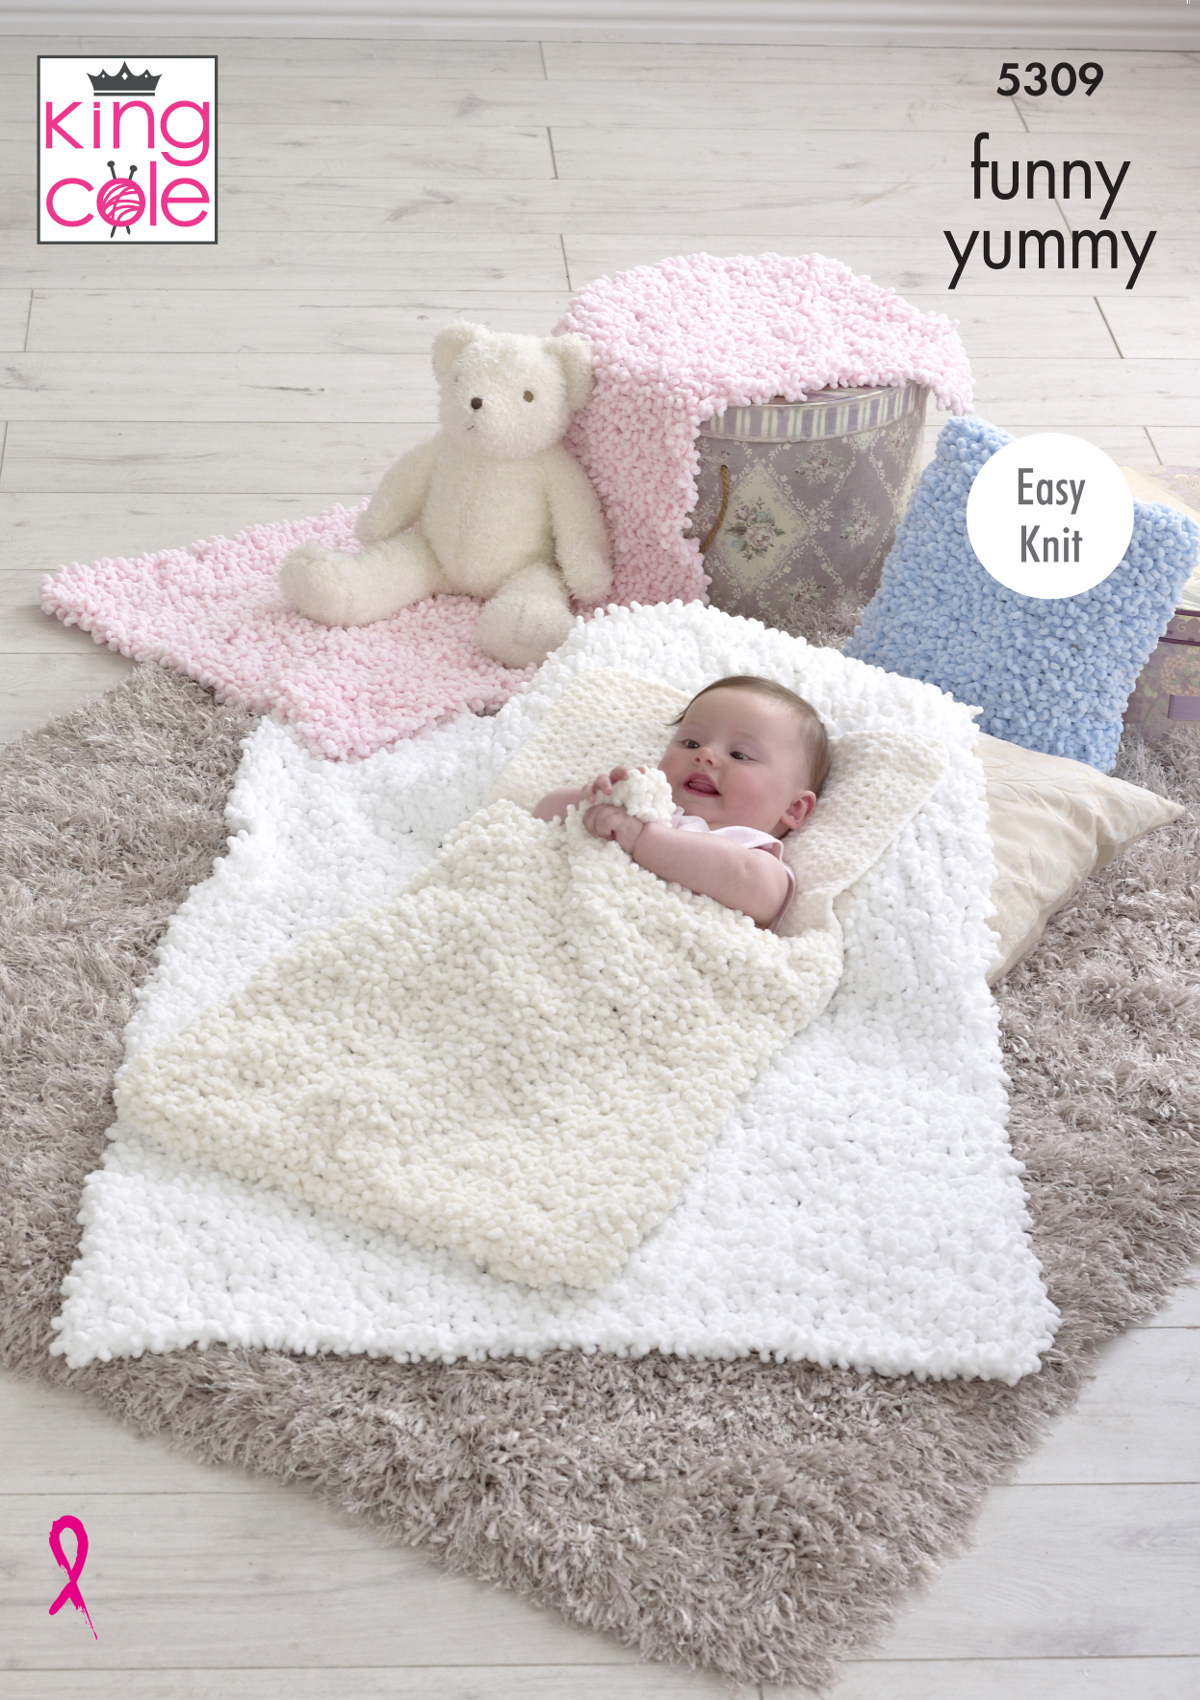 King Cole Funny Yummy Knitting Pattern Easy Knit Baby